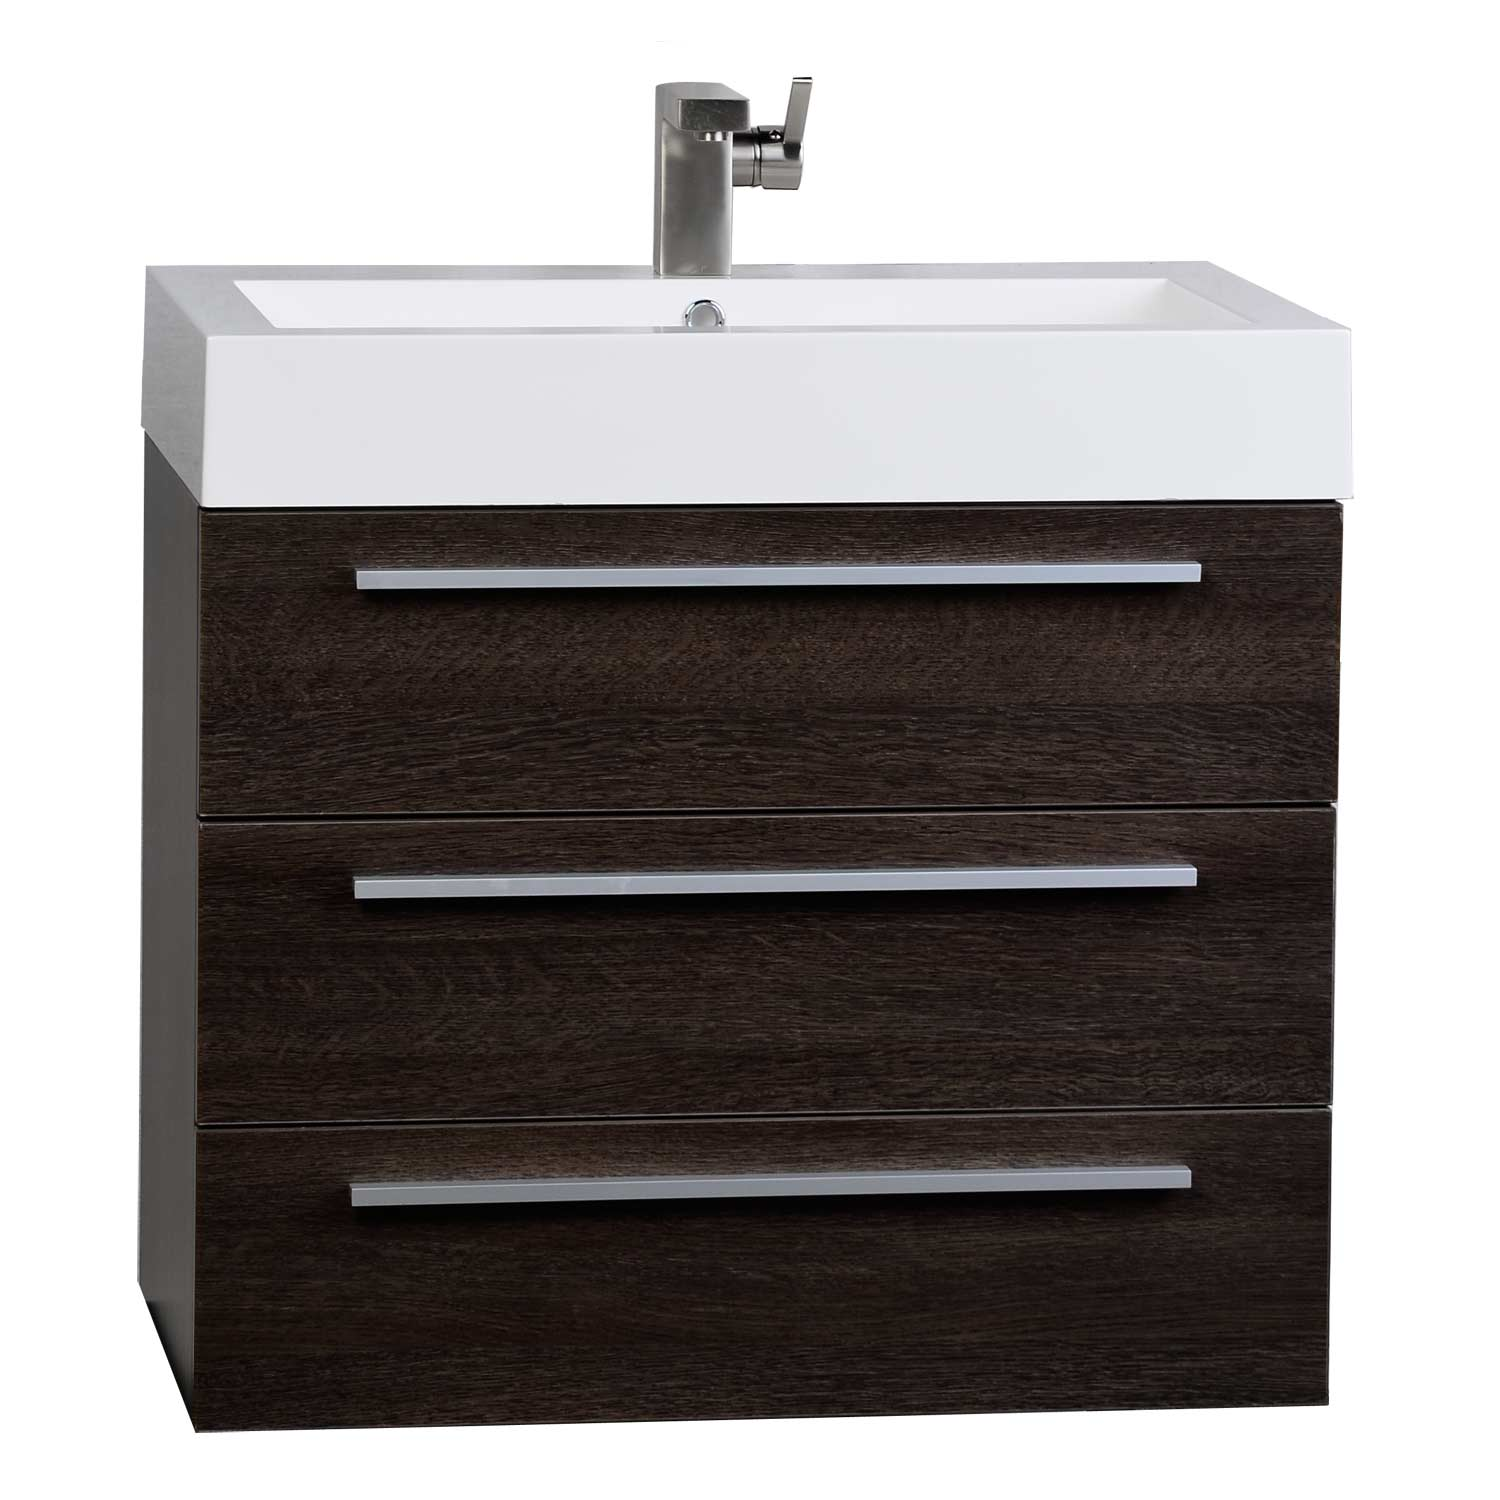 Modern 29 5 inch wall mounted single bathroom vanity set for Bathroom vanities